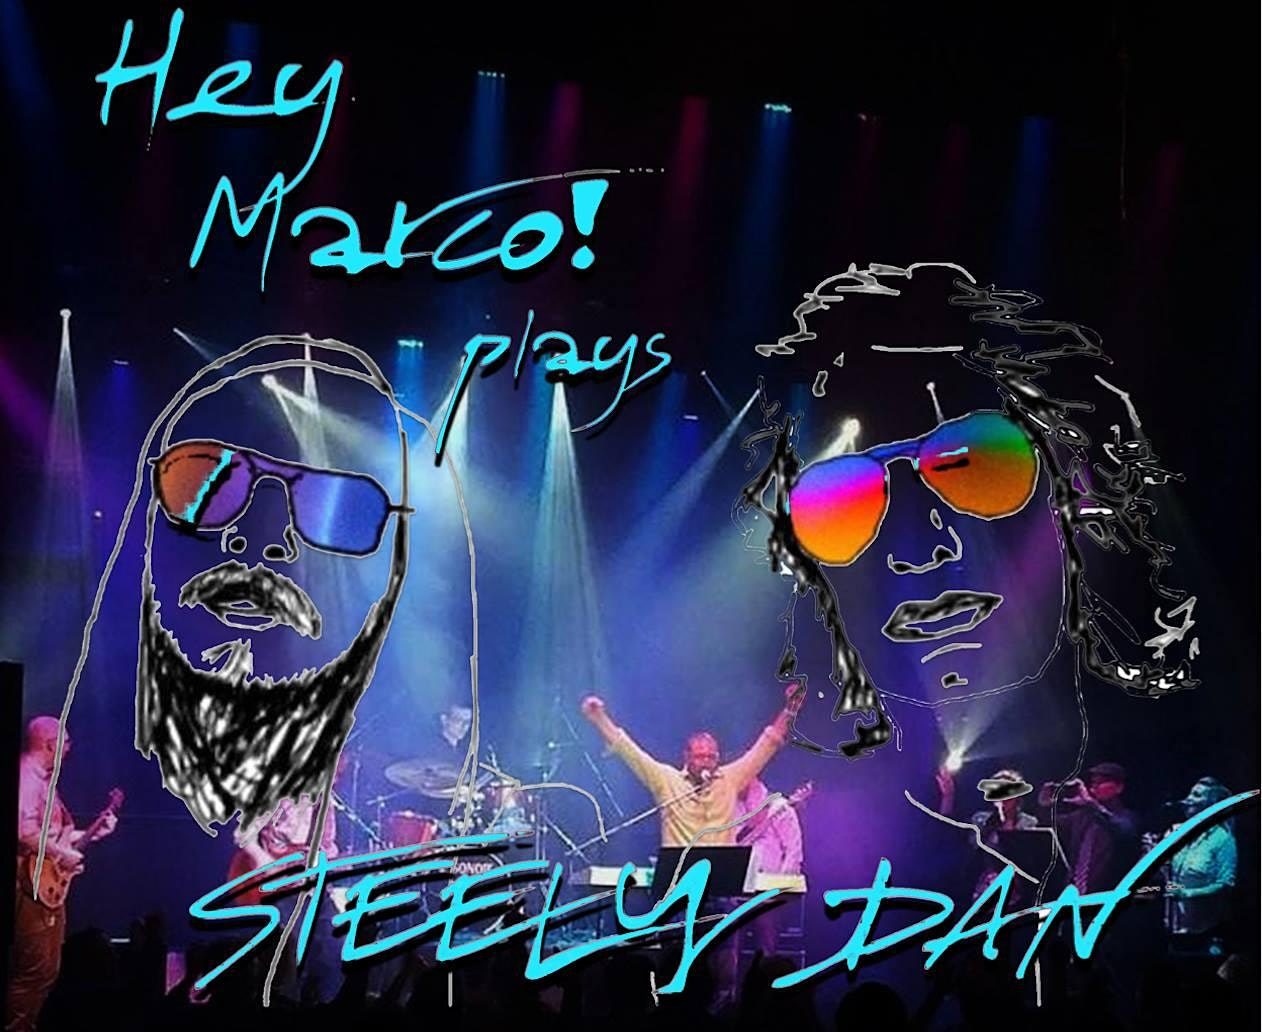 Hey Marco- A Tribute to Steely Dan